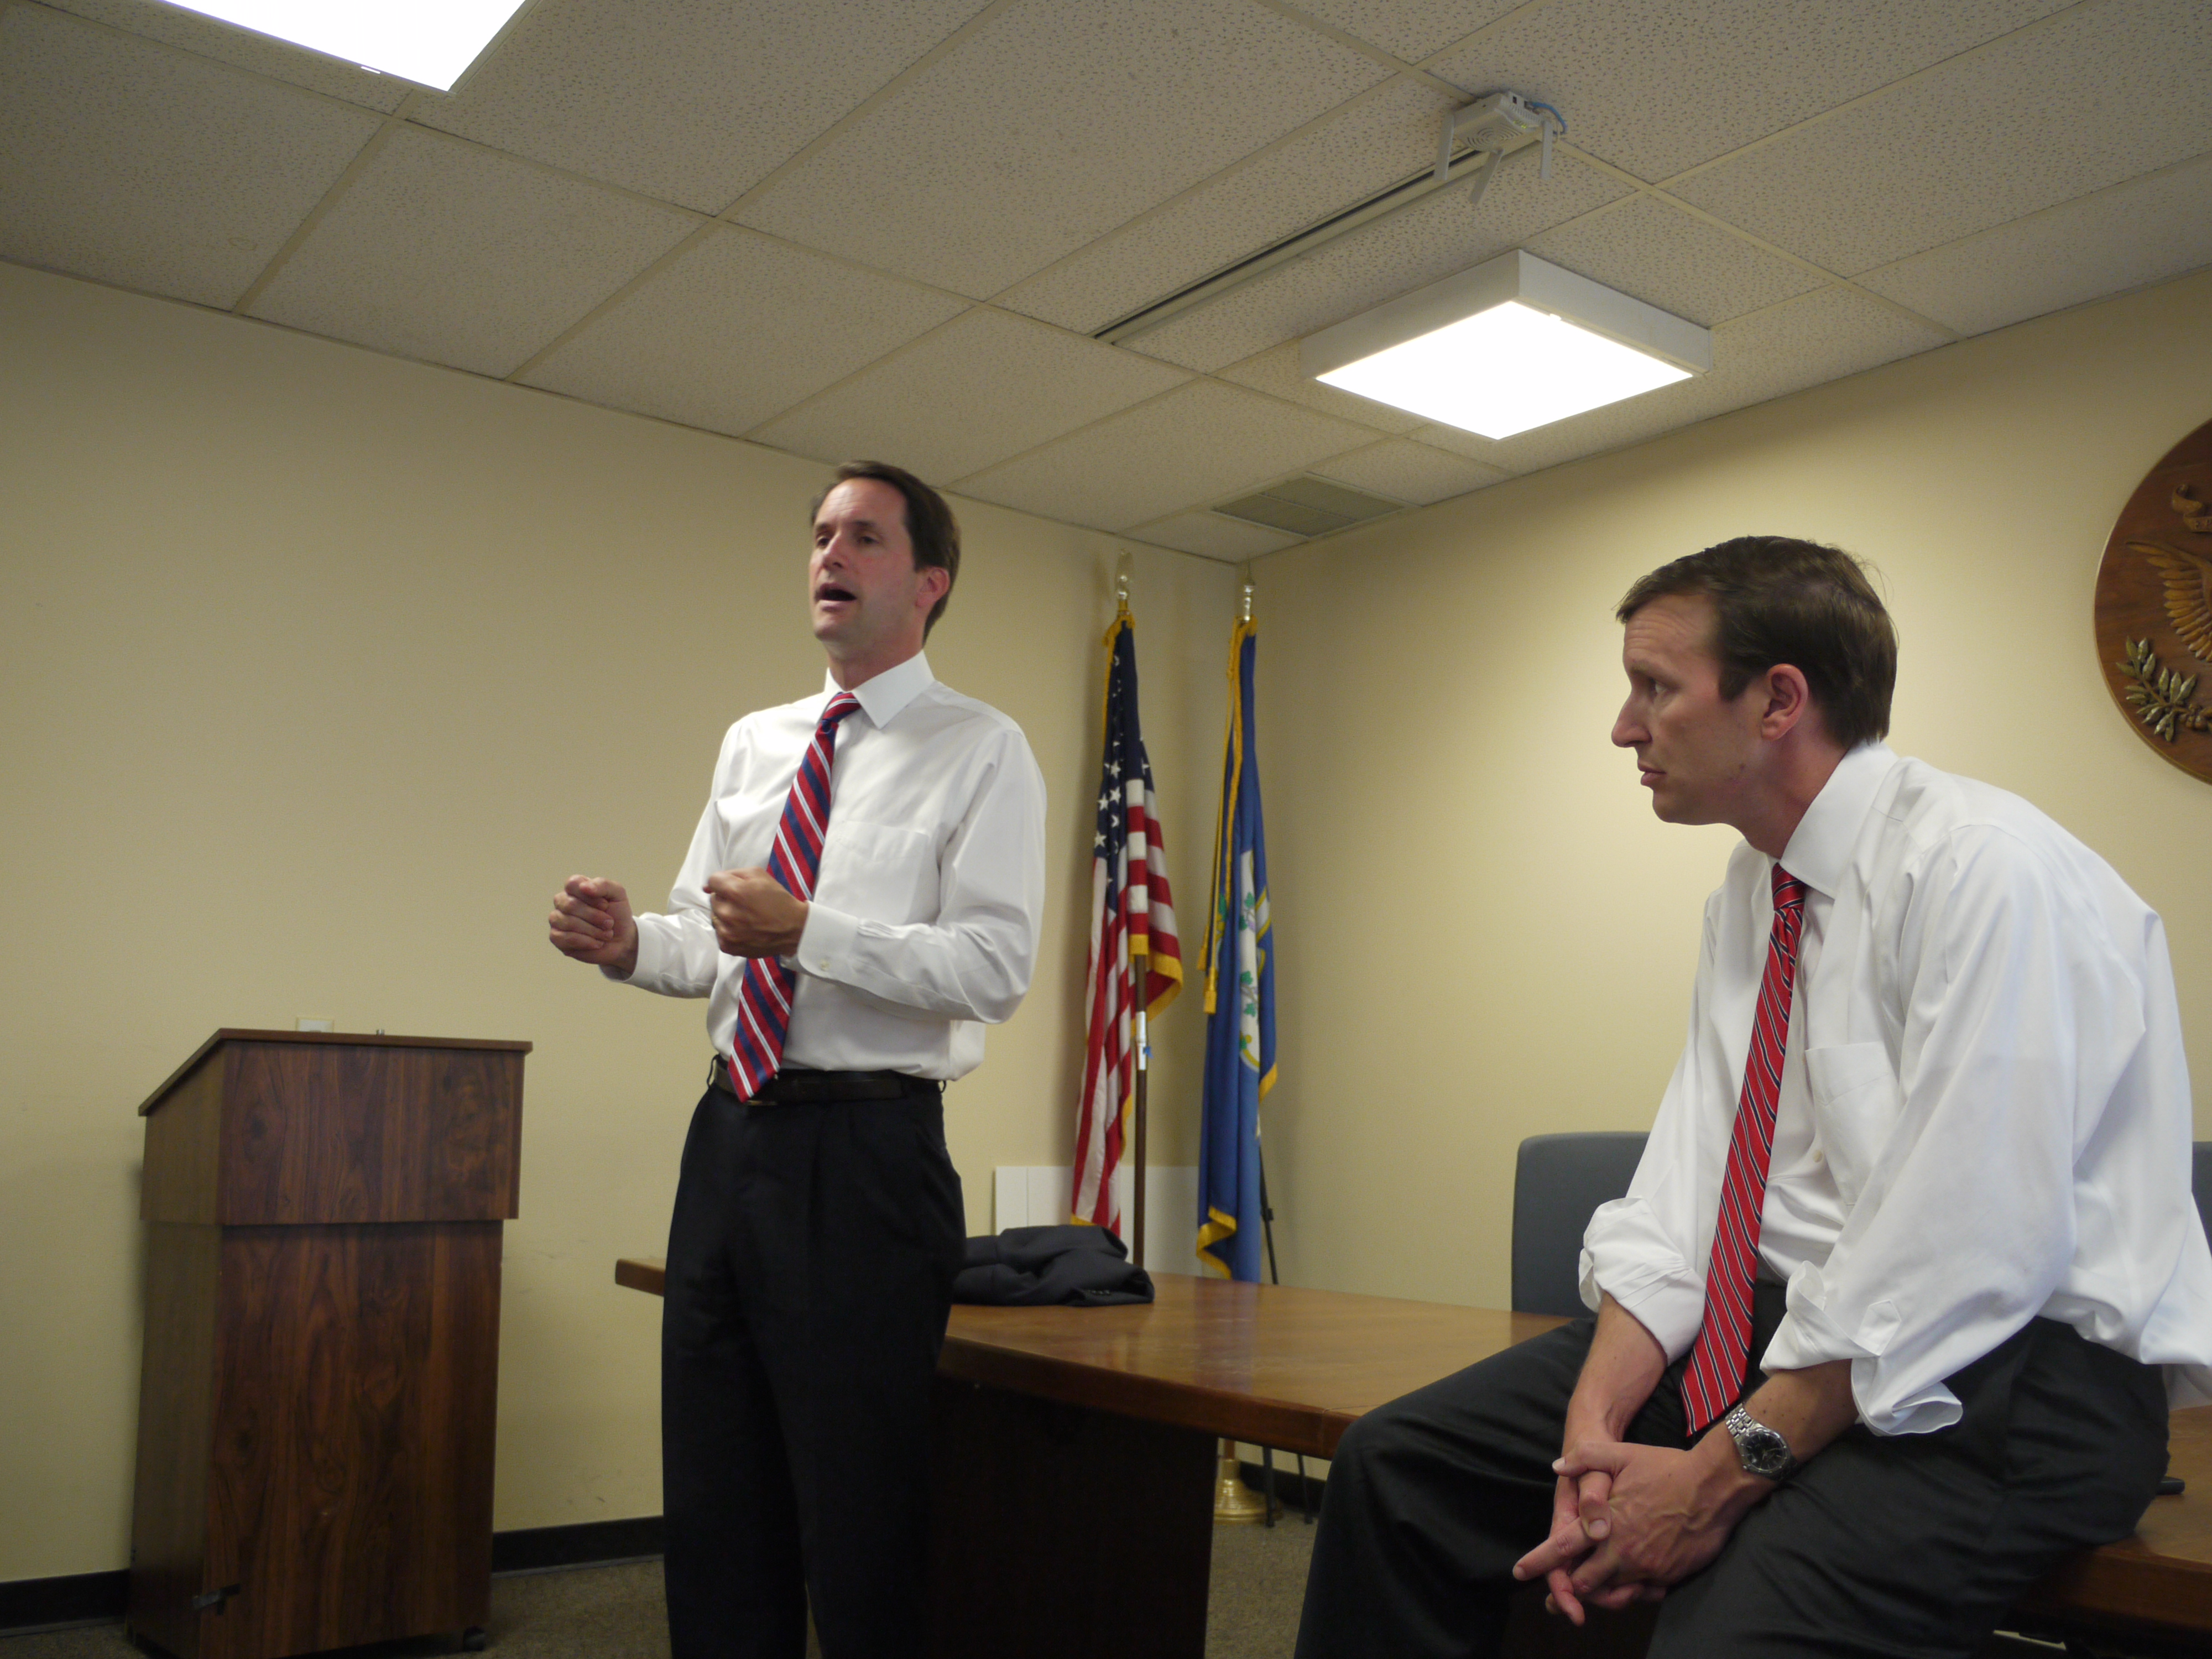 Congressman Jim Himes and U.S. Senator Chris Murphy spoke Monday about their concerns for the future of corporate identities with the recent Supreme Court decision.